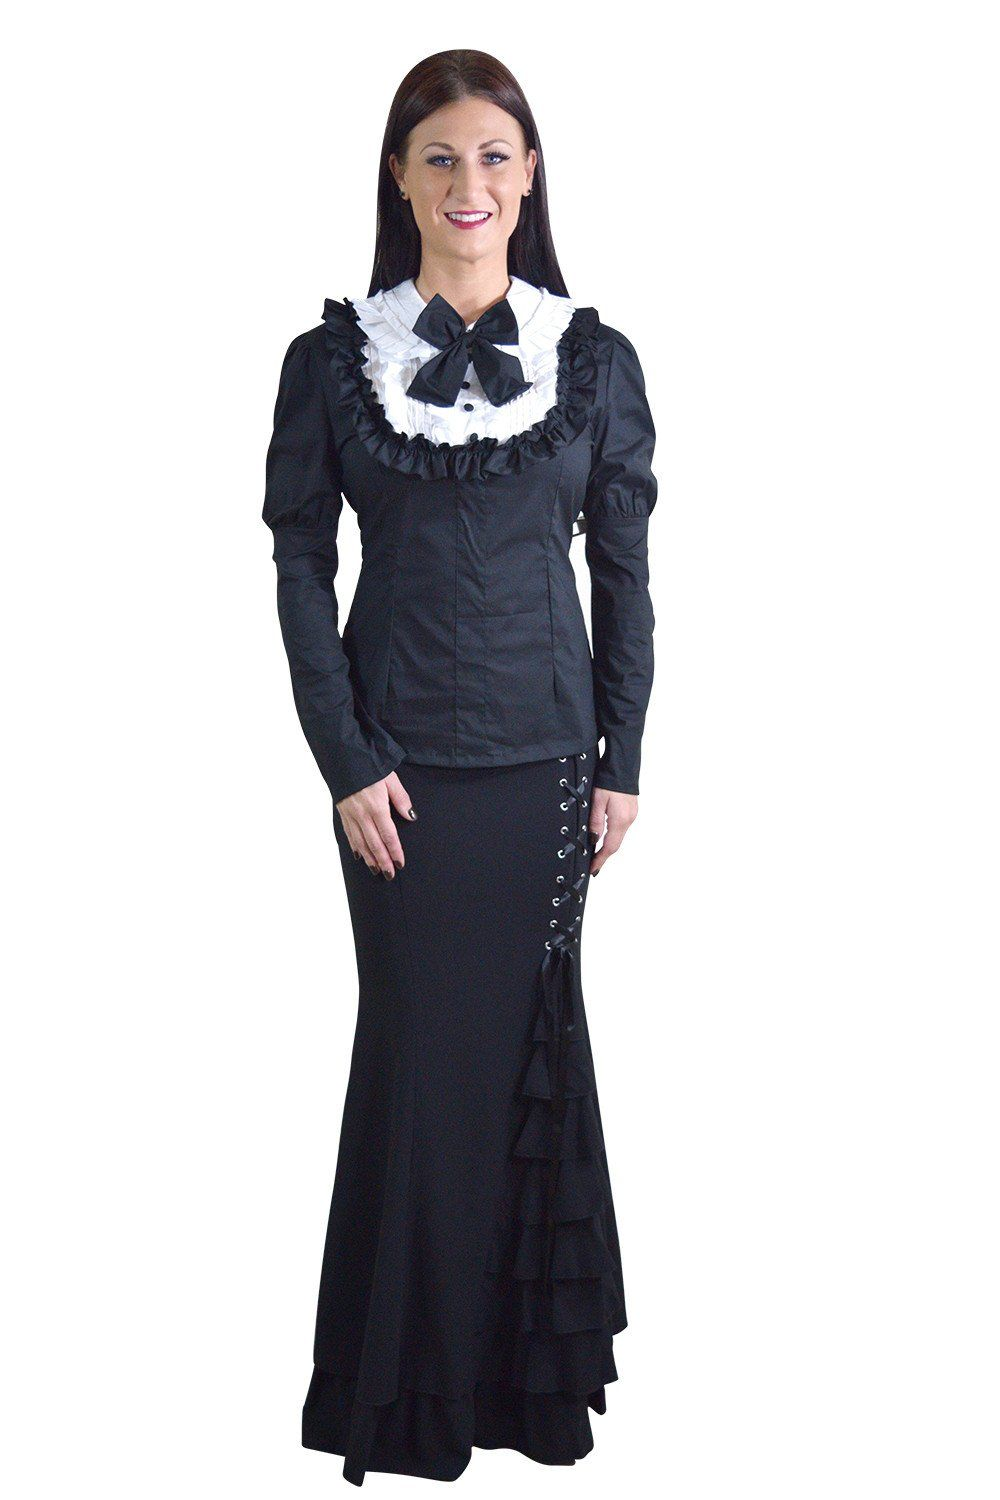 Gothic lolita black u white ruffle long sleeves blouse top products